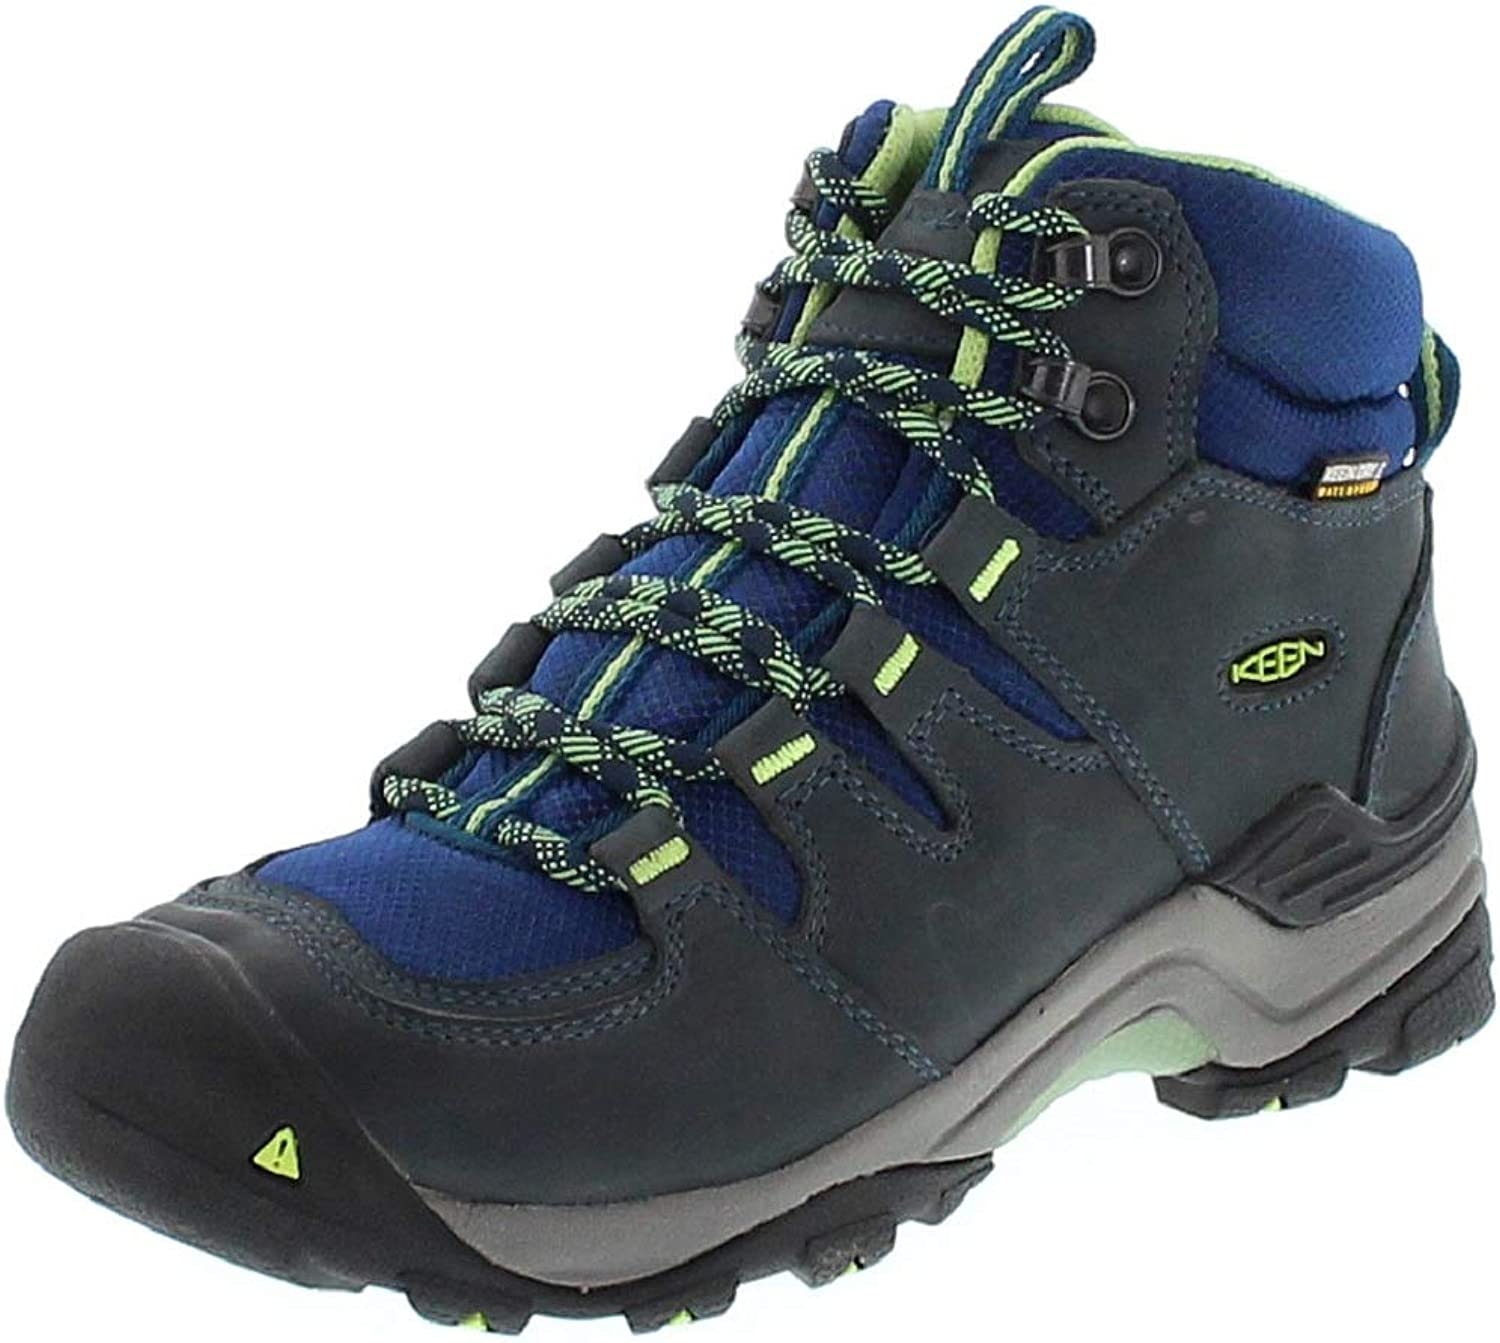 Keen Damen Hiking Schuhe Gypsum II MID WP Midnight Midnight Navy Opaline 39 EU